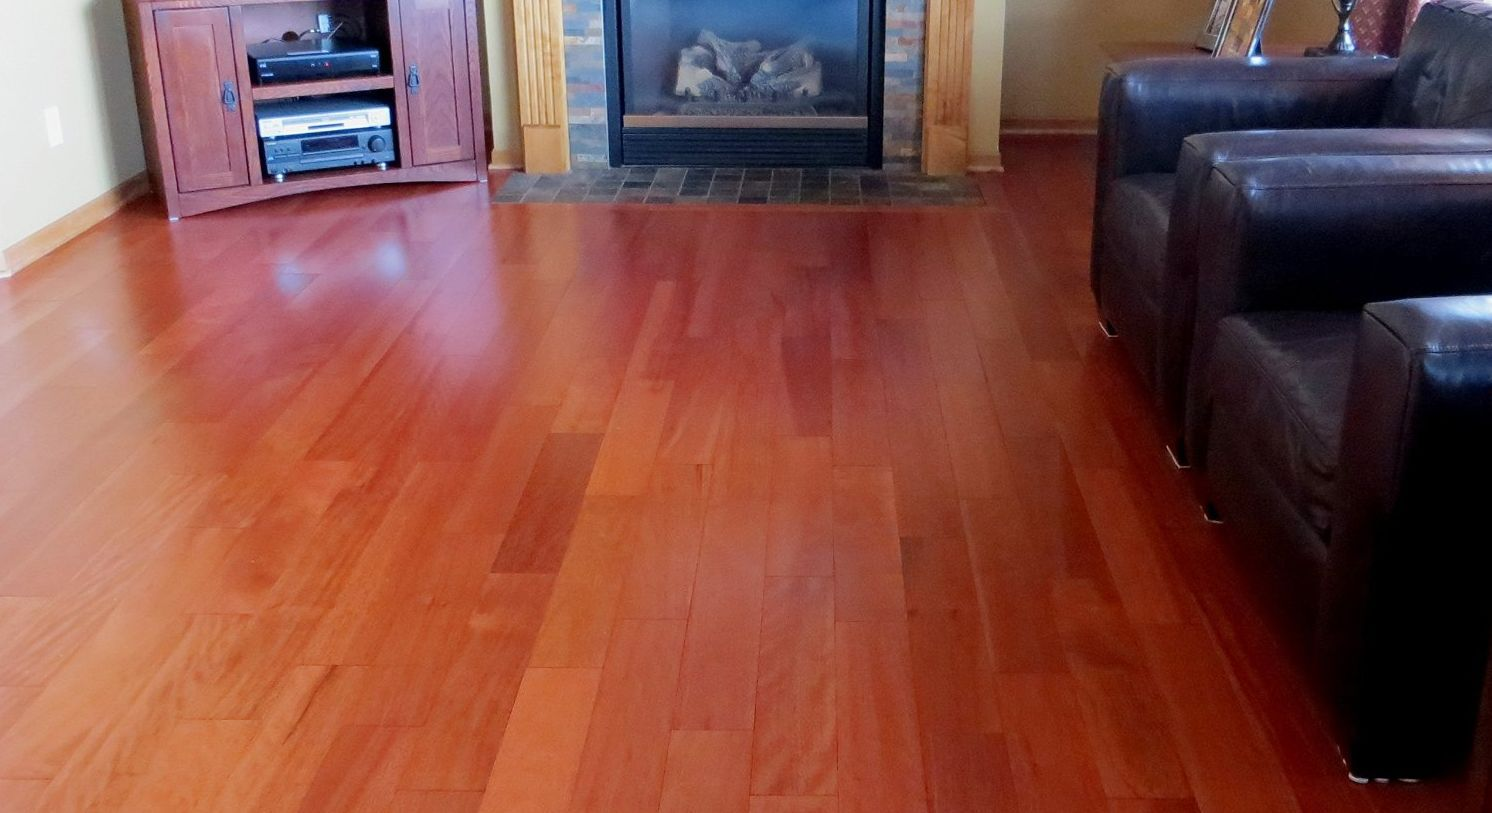 Malaccan Cherry Vs Brazilian Cherry Flooring